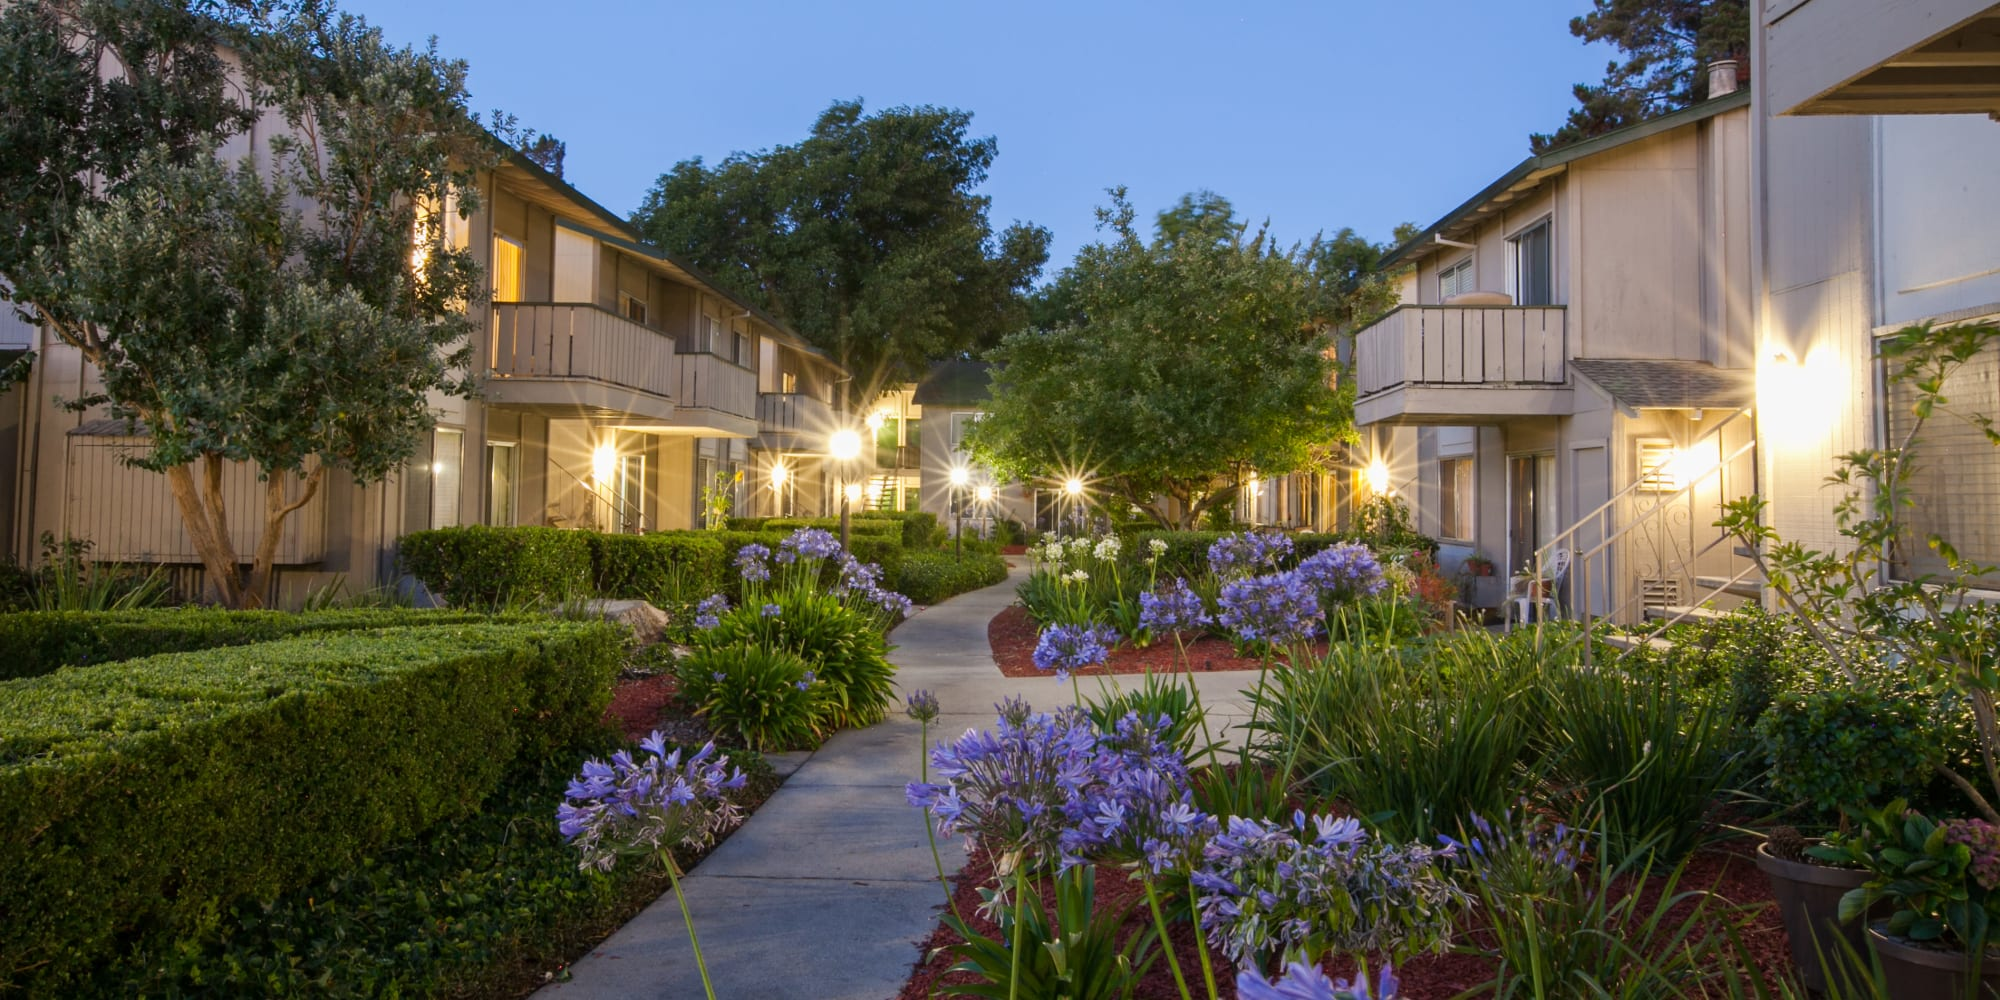 Appletree Apartments in Campbell, California